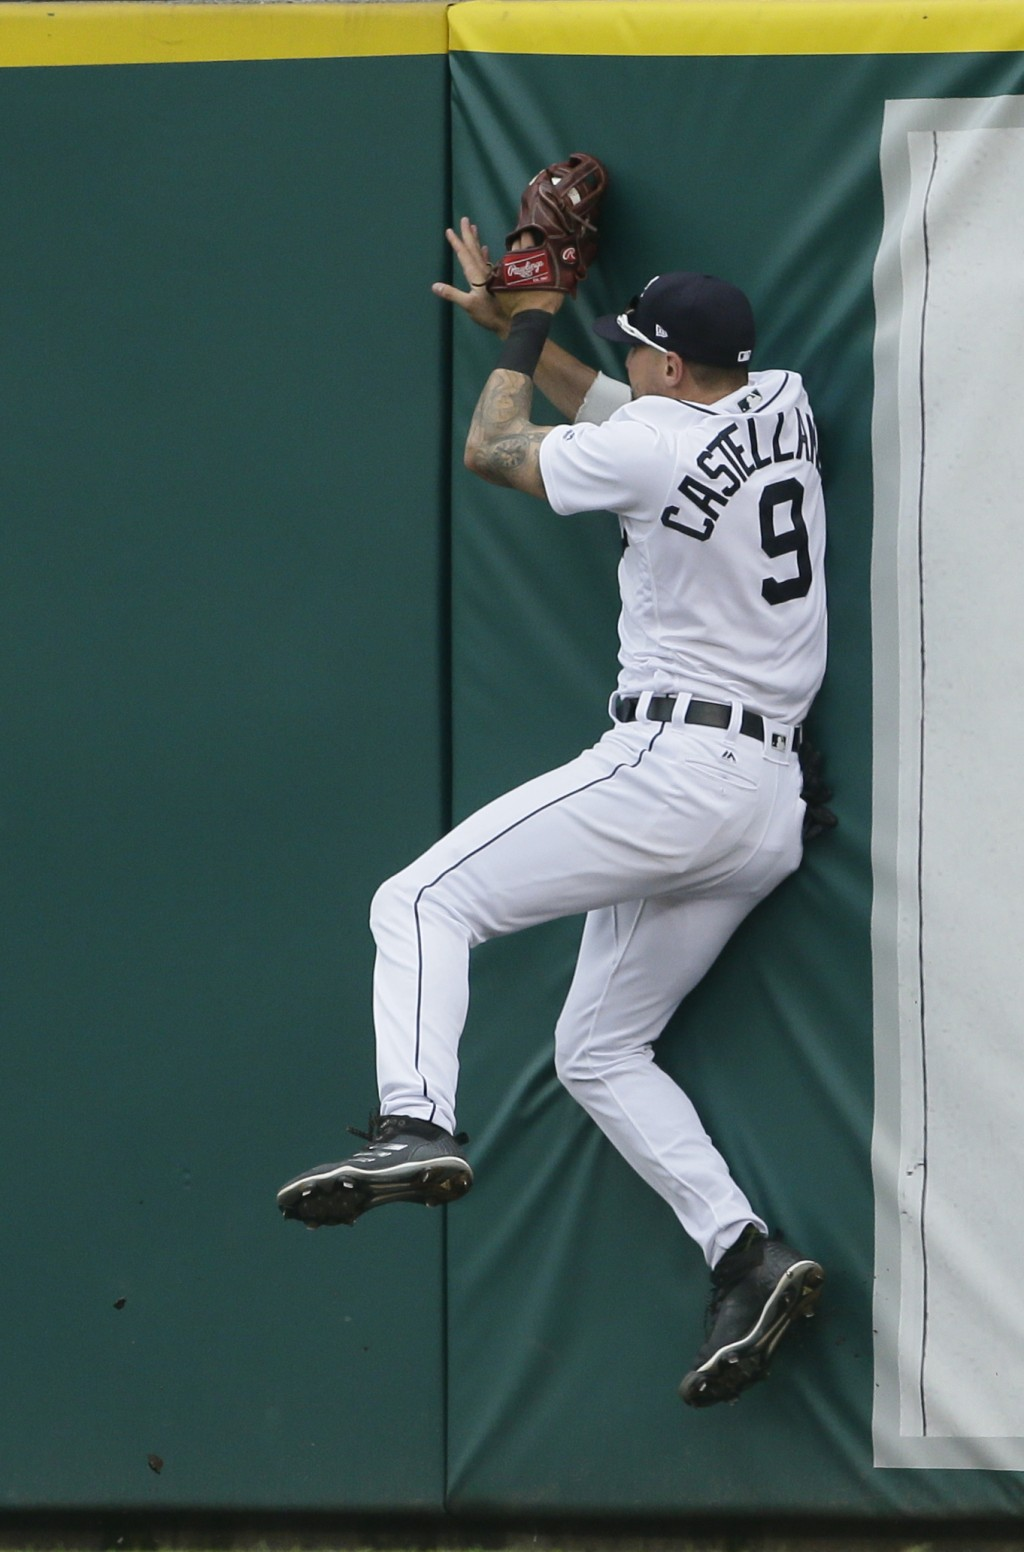 Detroit Tigers right fielder Nicholas Castellanos hits the right field wall after catching a fly ball hit by Toronto Blue Jays' Devon Travis during th...